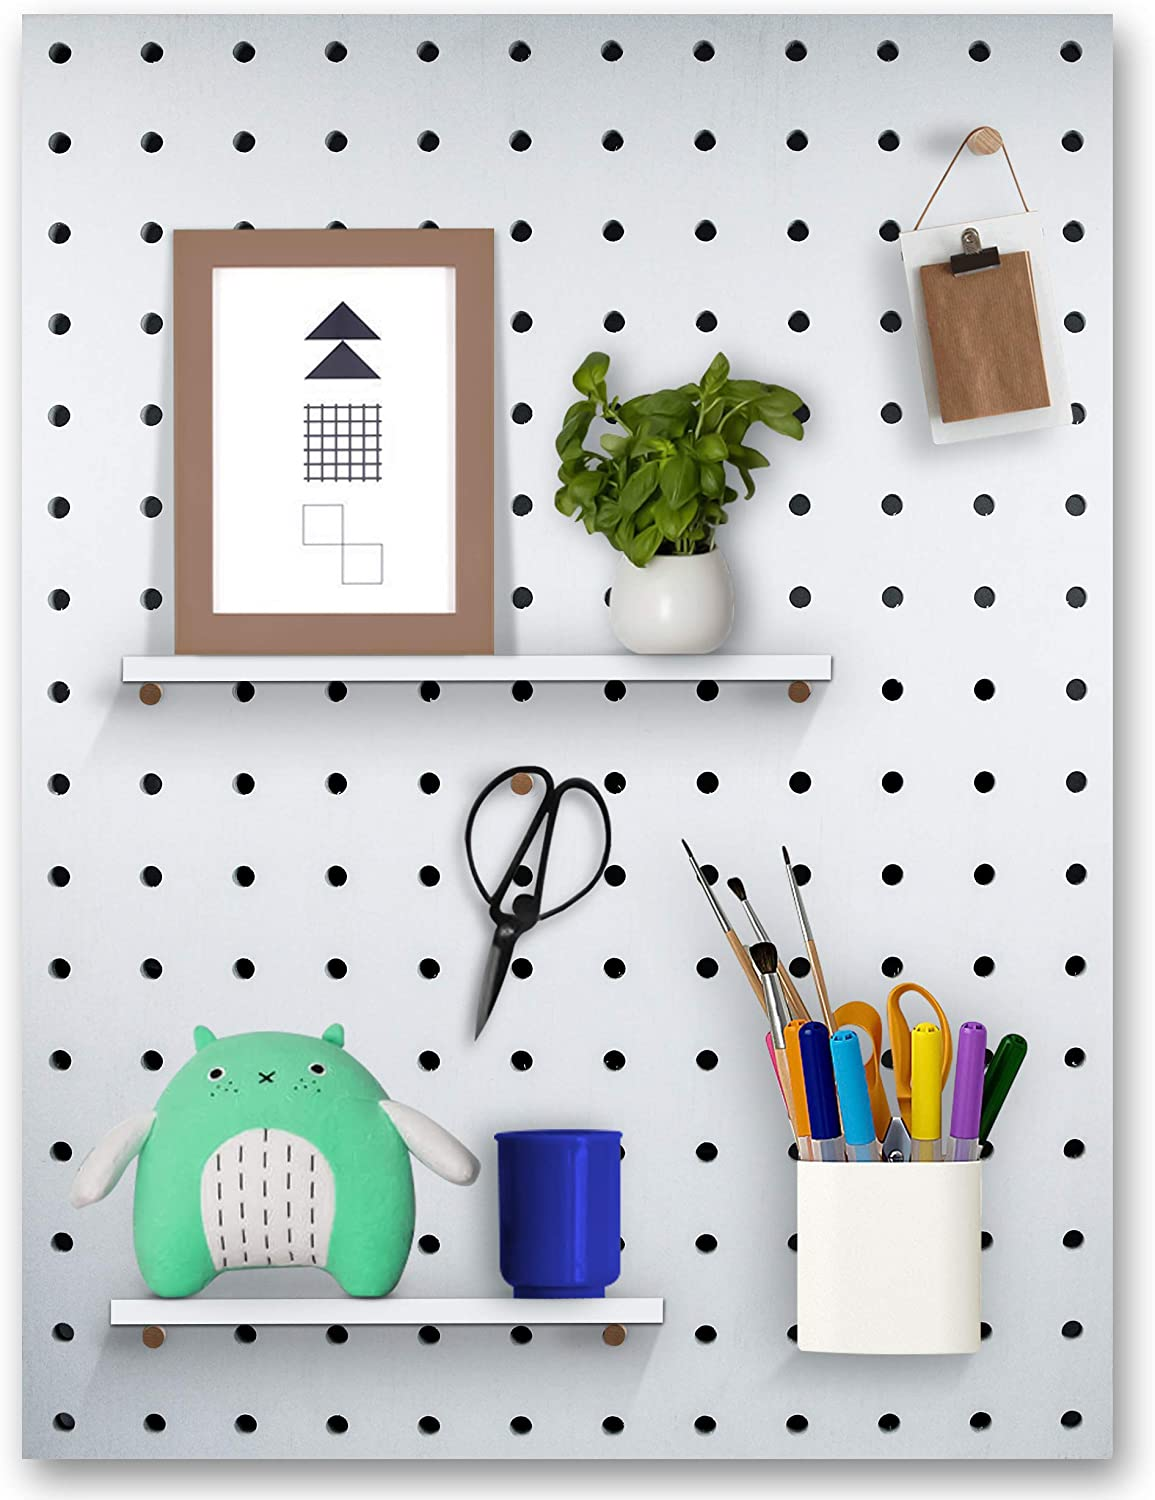 Pegboard Wall Organizer & Home Decor - 24 x 32 Inches, Complete Installation Kit, Multi Functional Wall Storage for Photo Grid, Hanging Items, Plant Pots, and Keeping Home Office Organized